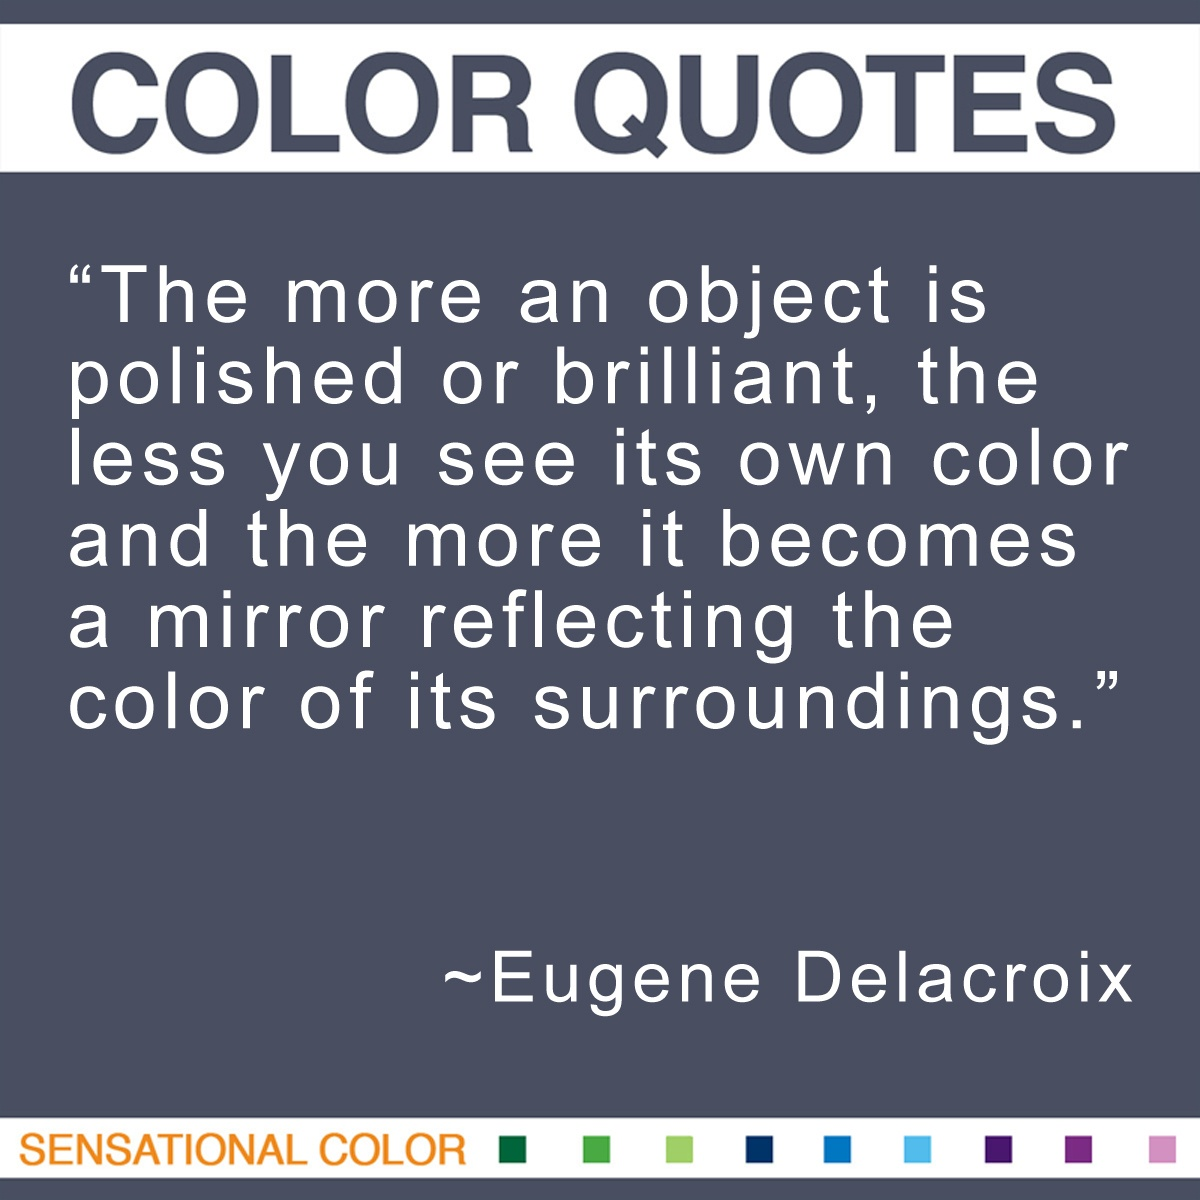 """The more an object is polished or brilliant, the less you see its own color and the more it becomes a mirror reflecting the color of its surroundings."" - Eugene Delacroix"